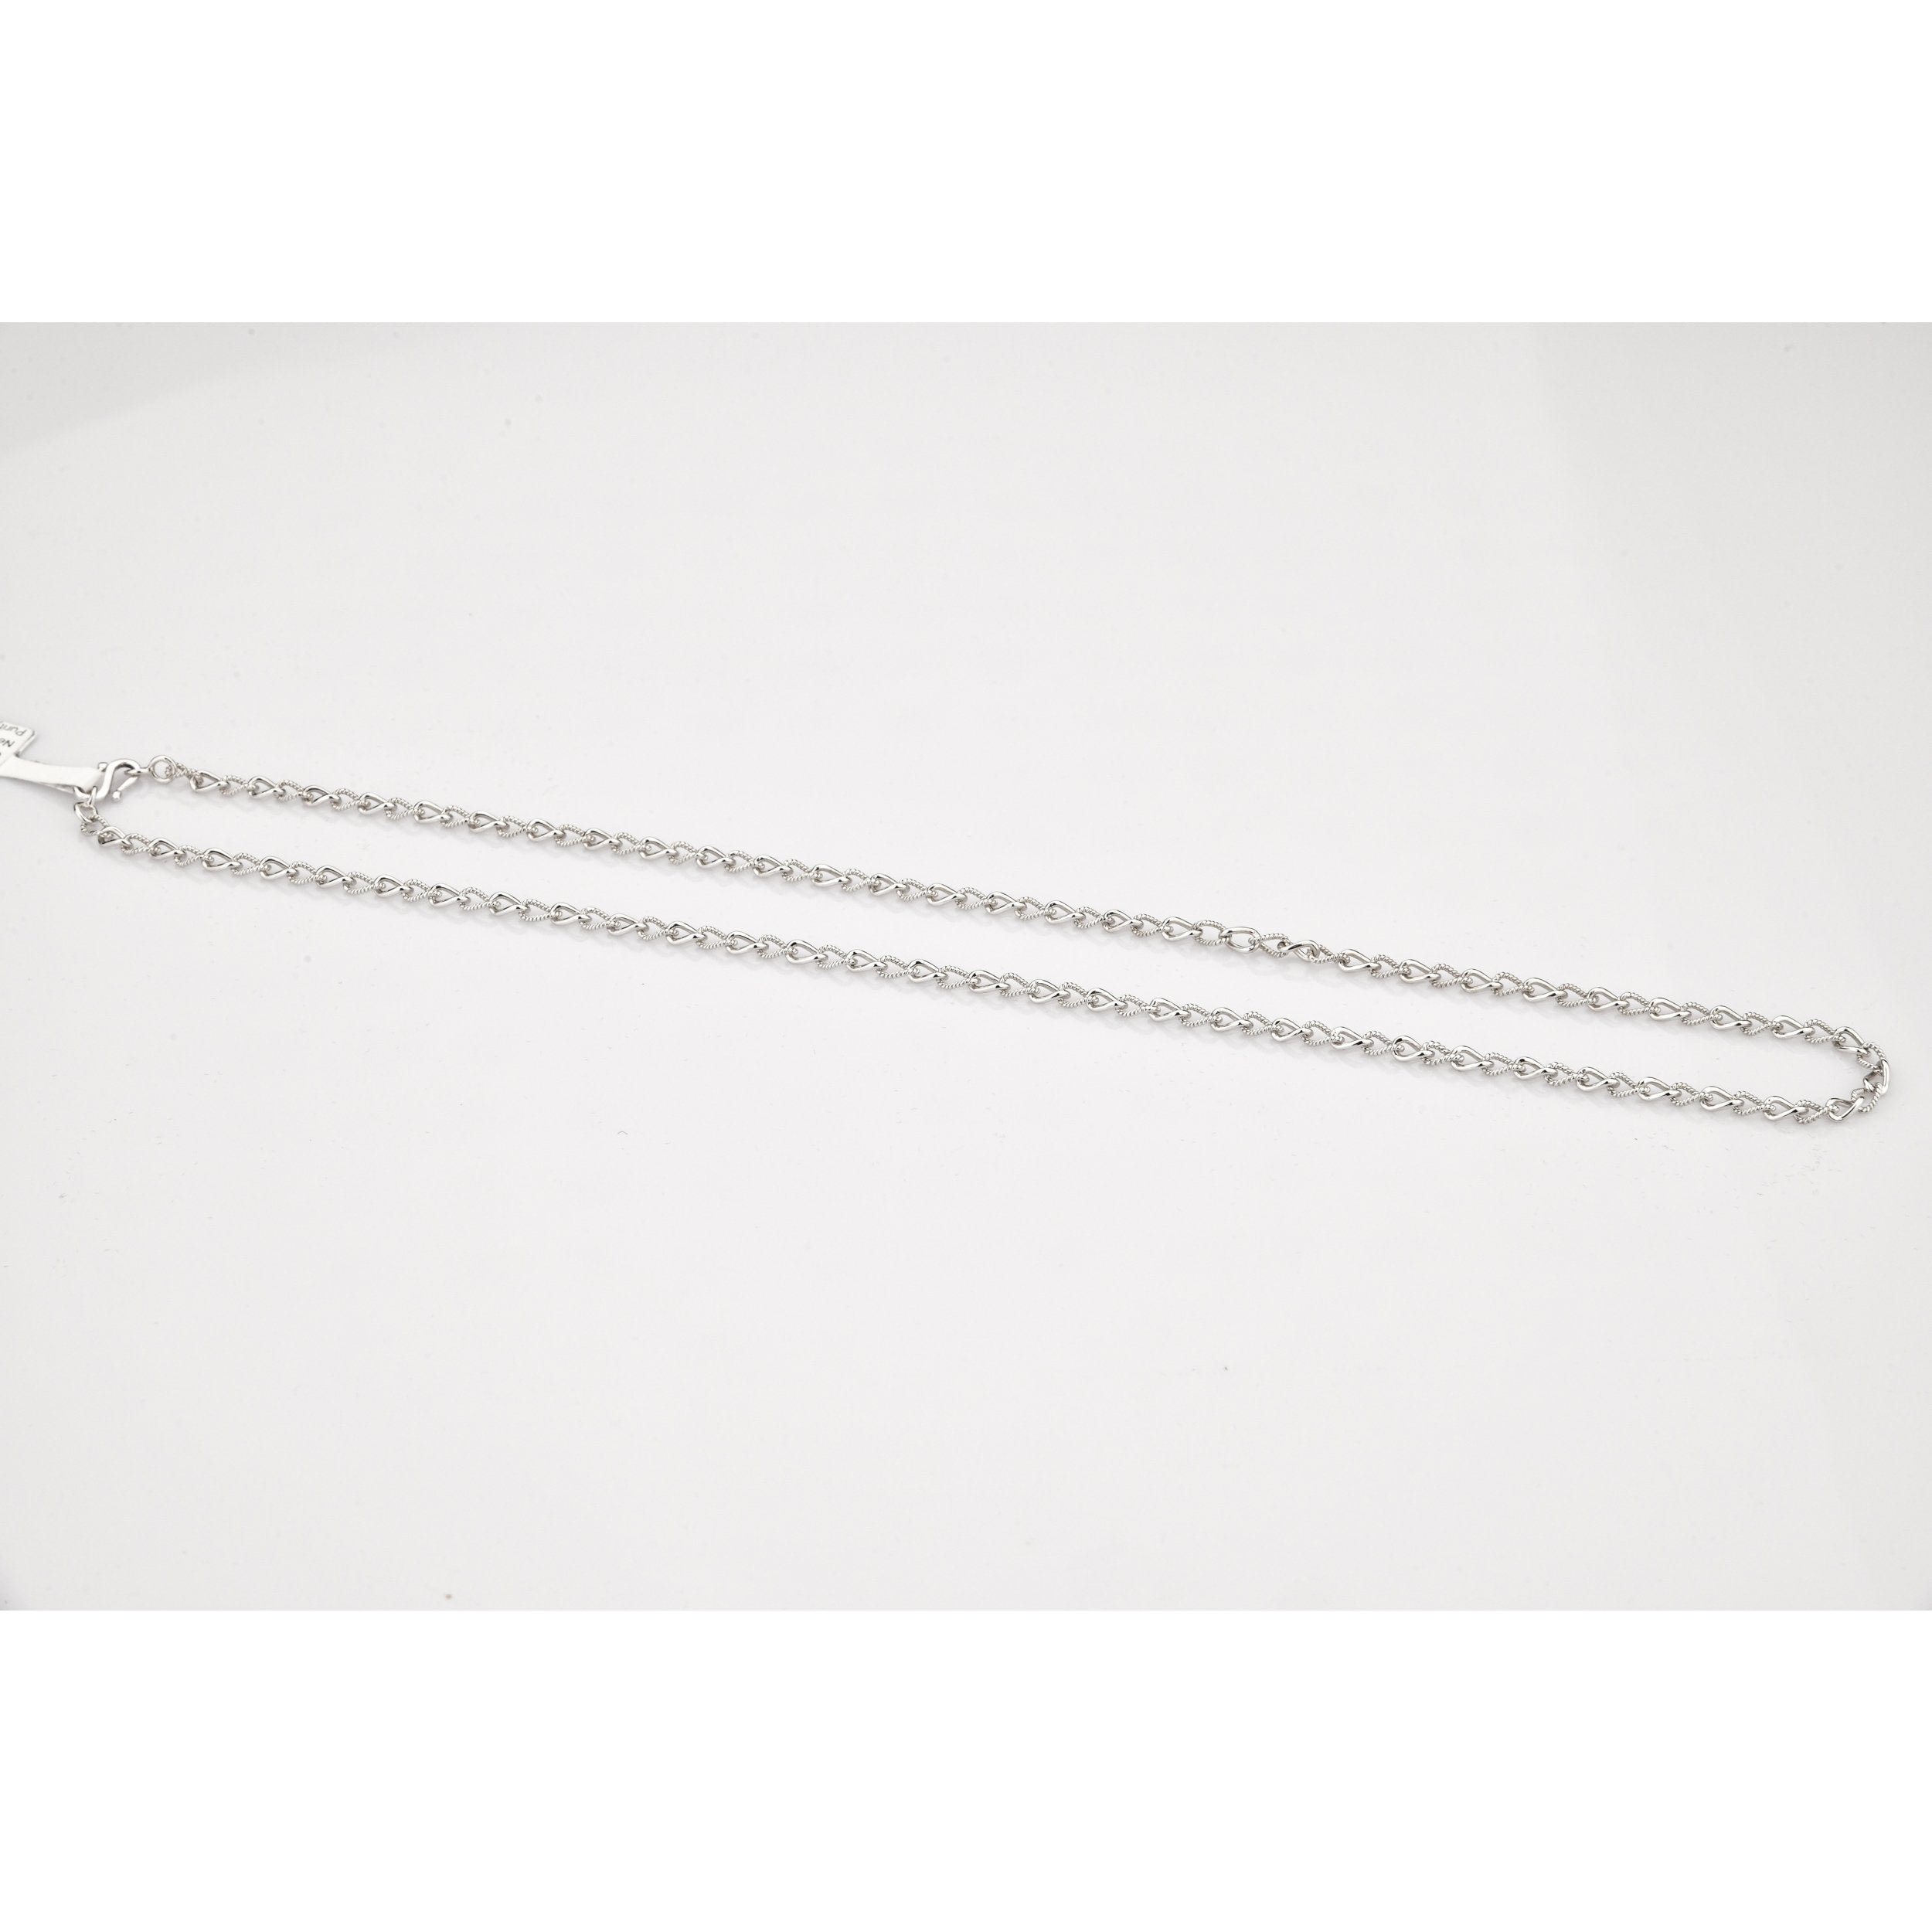 Designer Platinum Chain with Alternating Milgrain Links JL PT CH 830